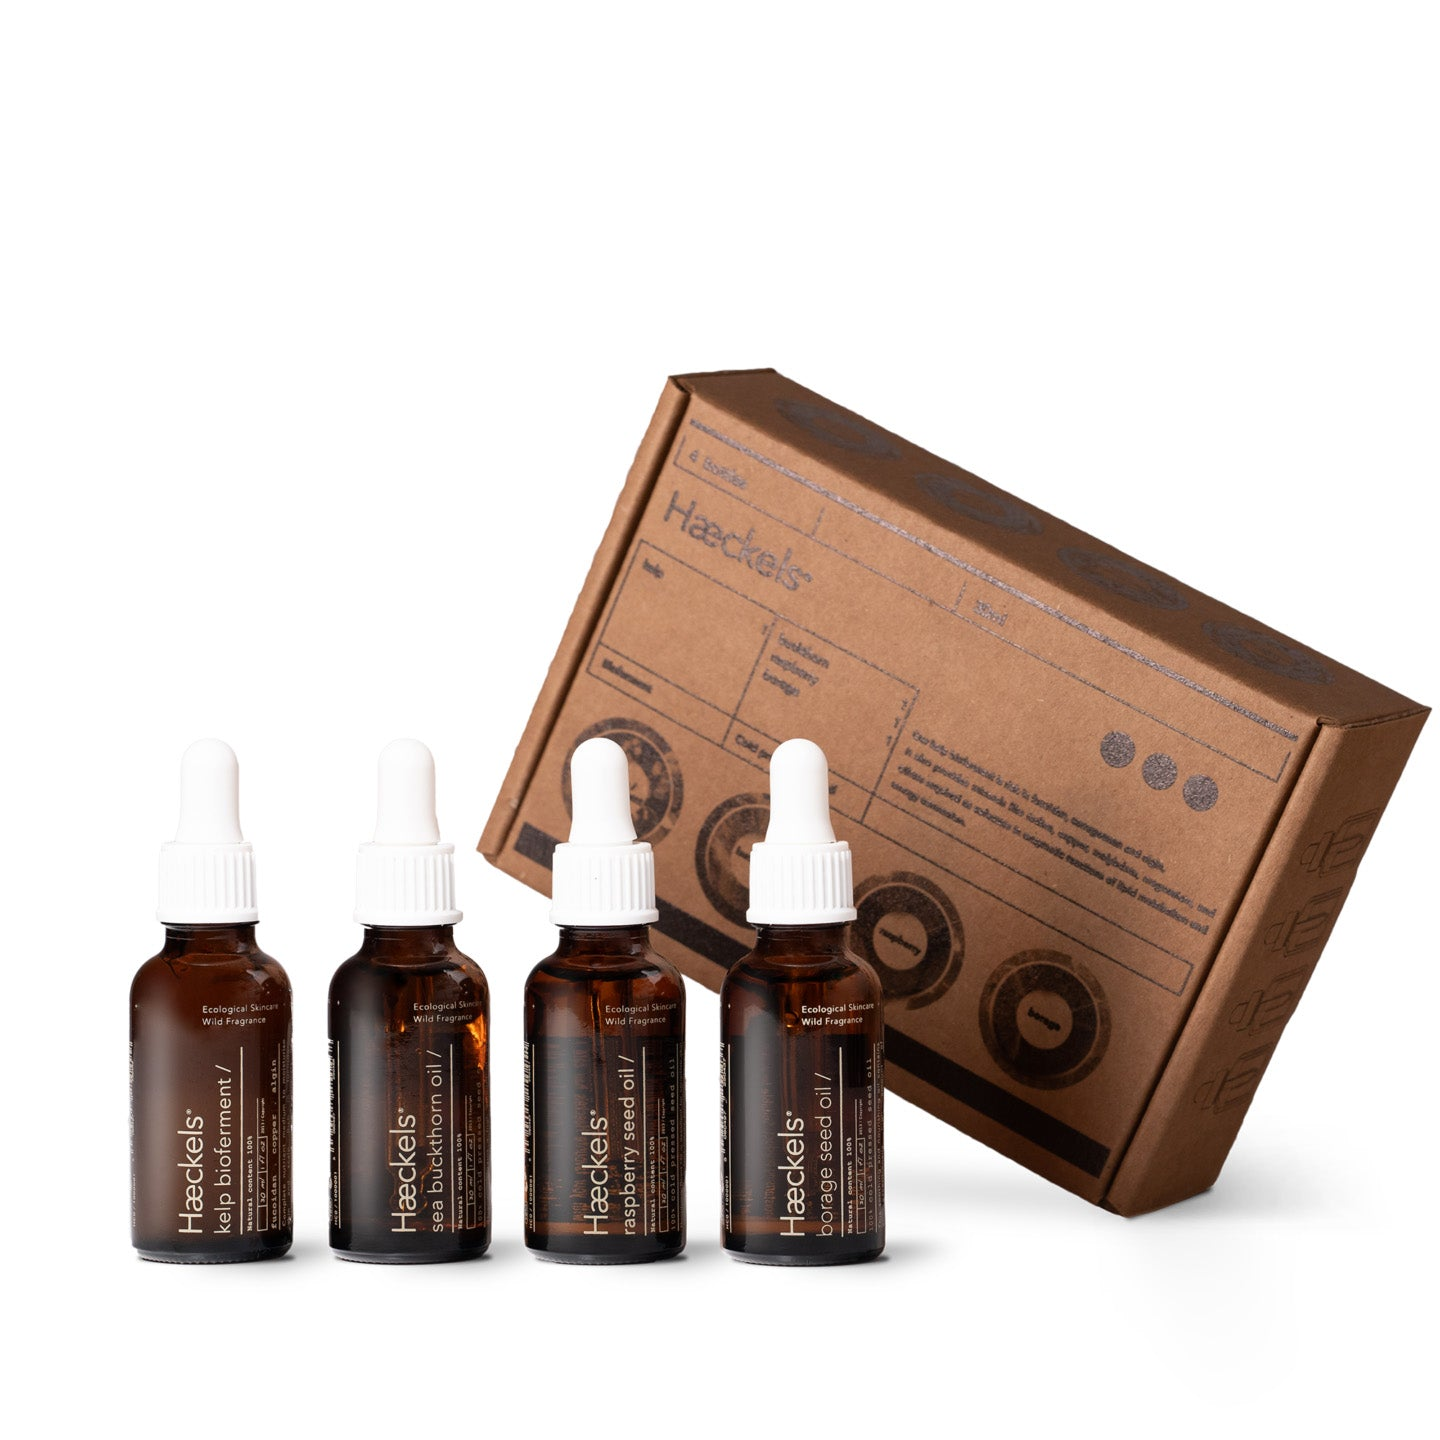 Haeckels Skin Care Mixology Set